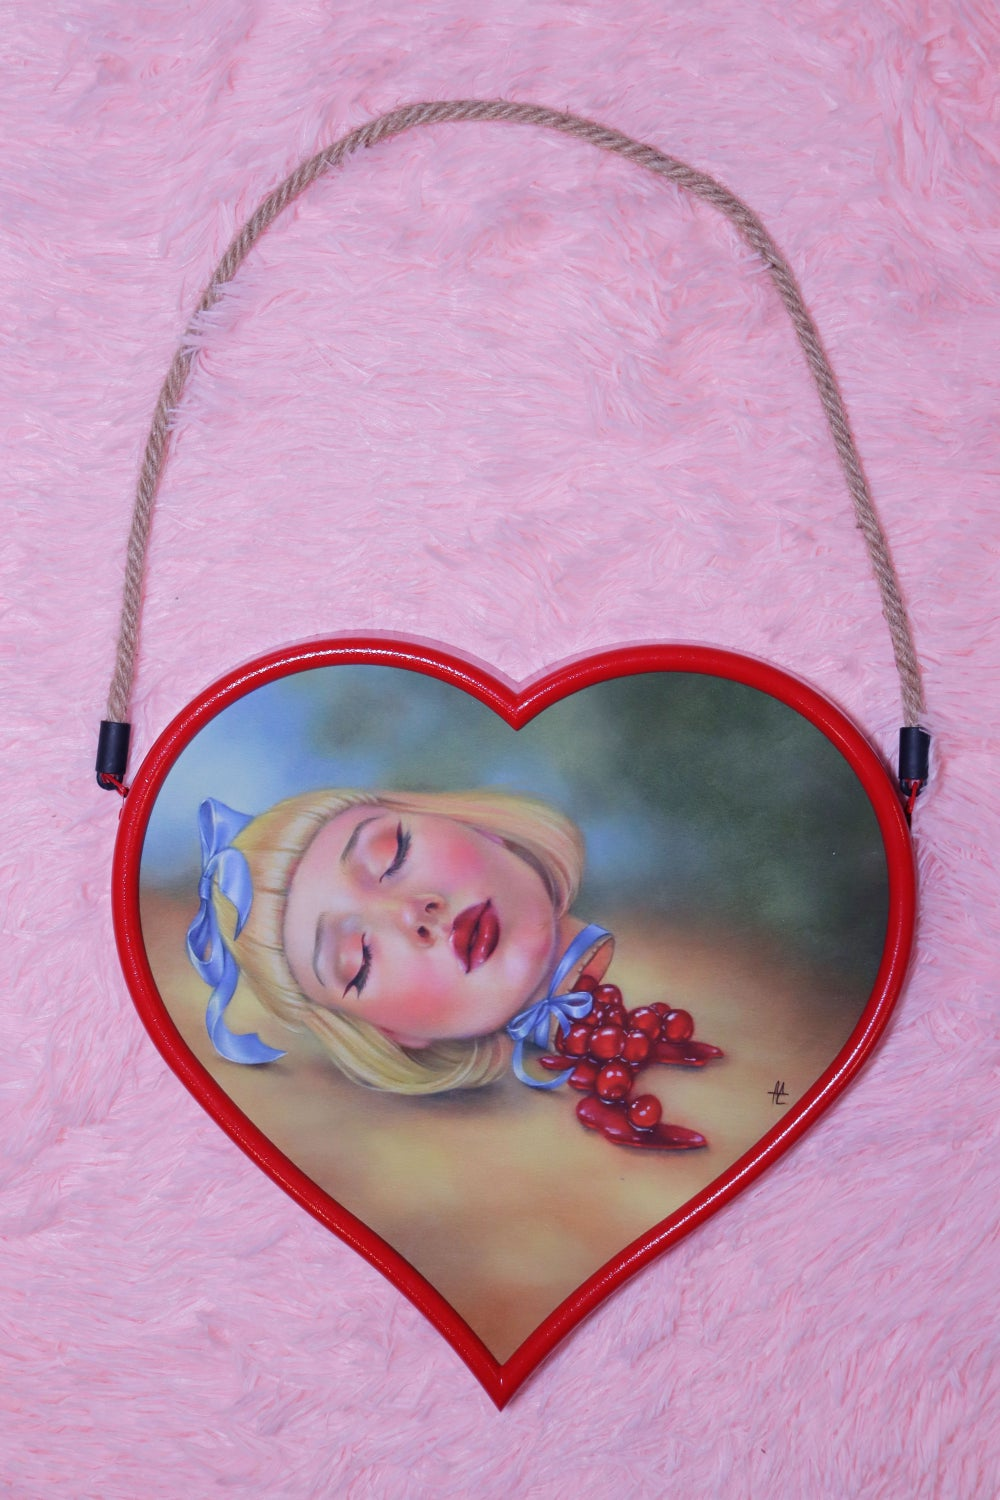 Image of Cherry Pie Girl Limited Edition Framed Giclee Print - LARGE